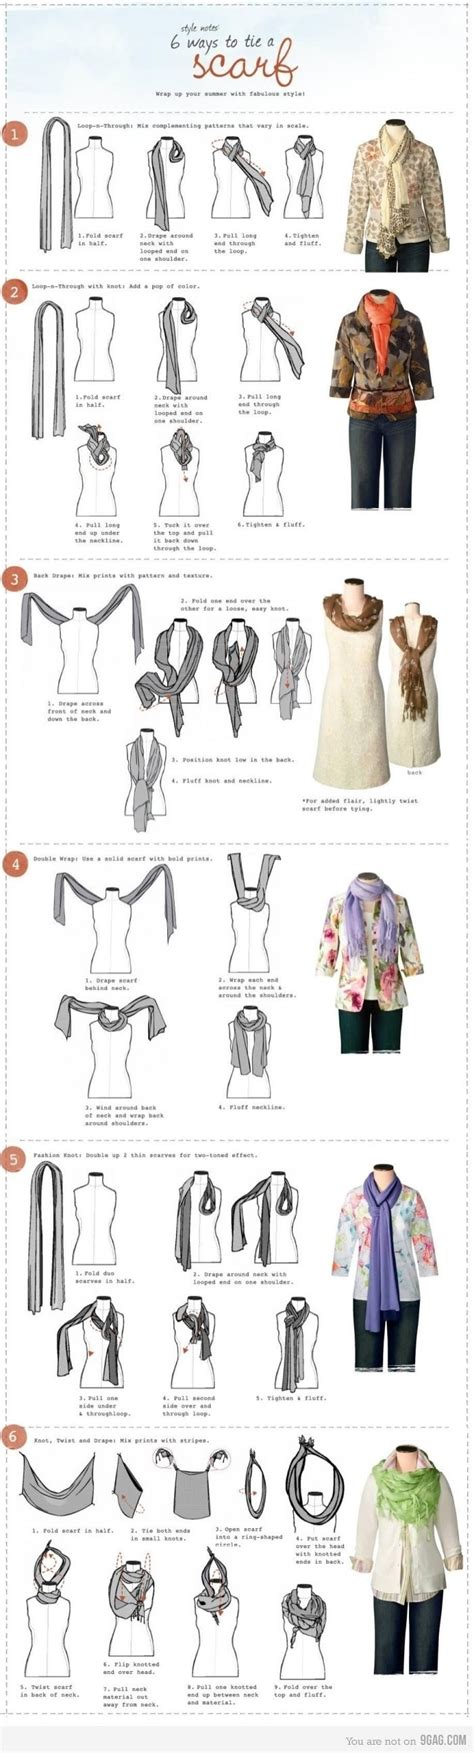 different ways to wear a scarf style